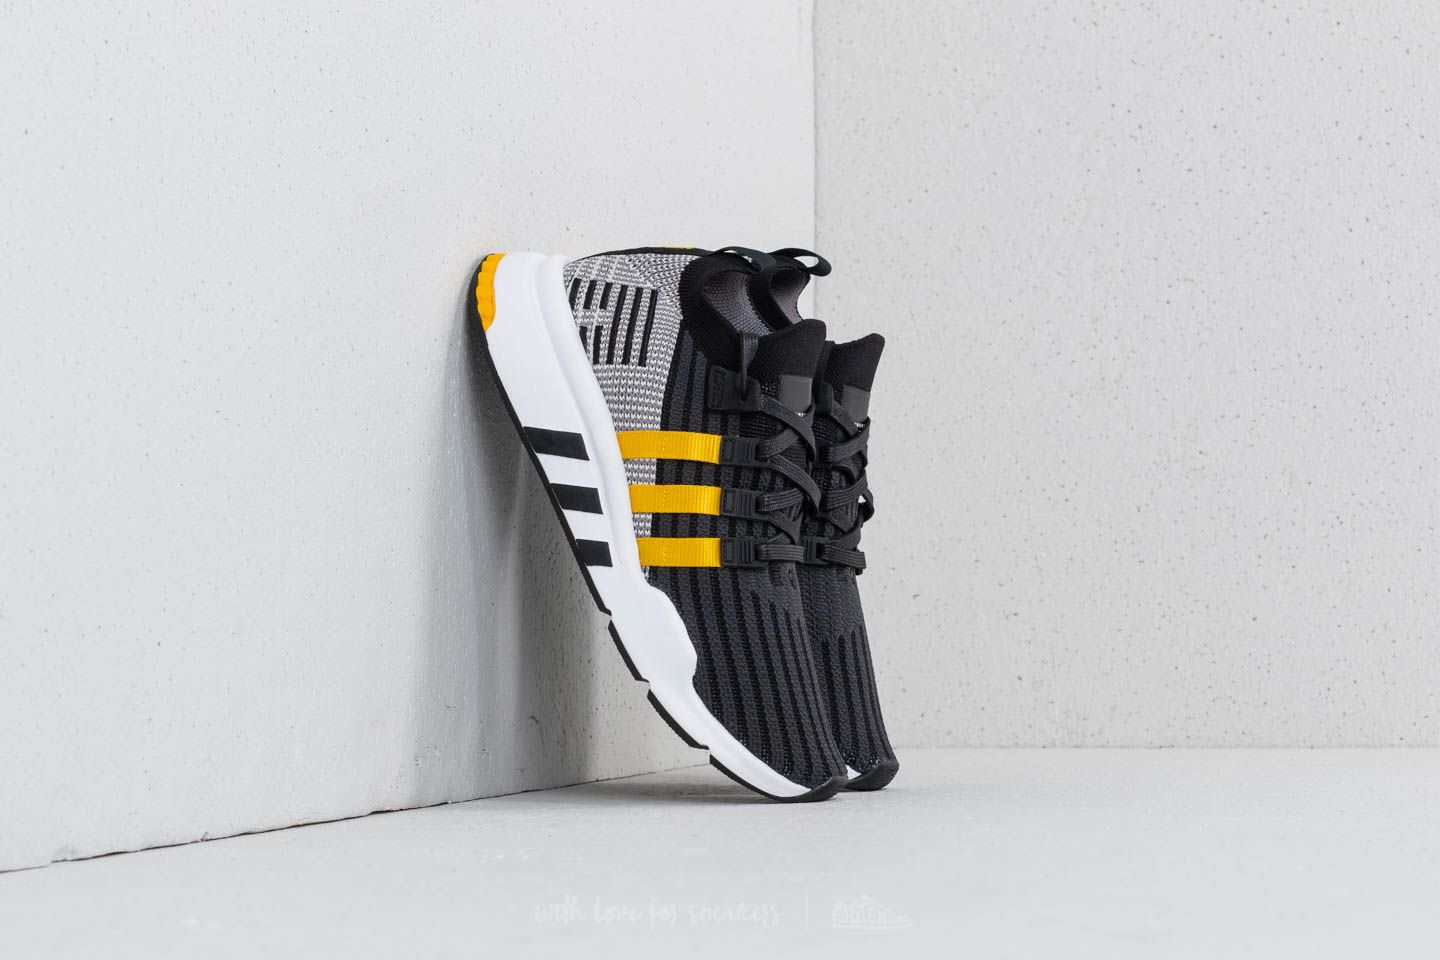 Support Adv Yellow Black Ftw Mid Core Eqt Primeknit Adidas 0PknwO